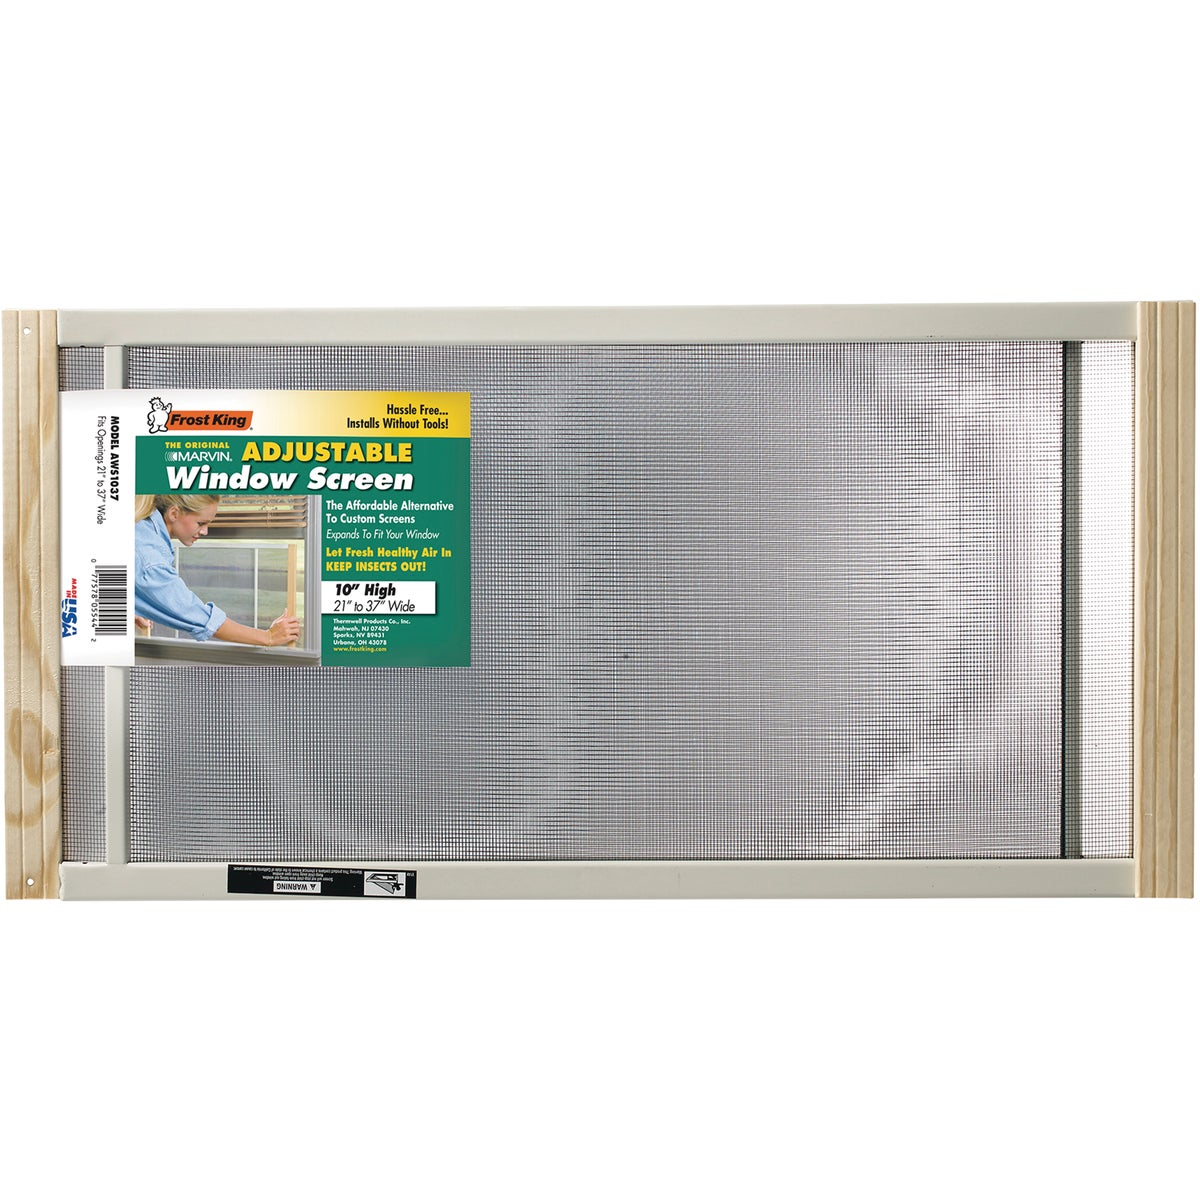 ADJUSTABLE WINDOW SCREEN